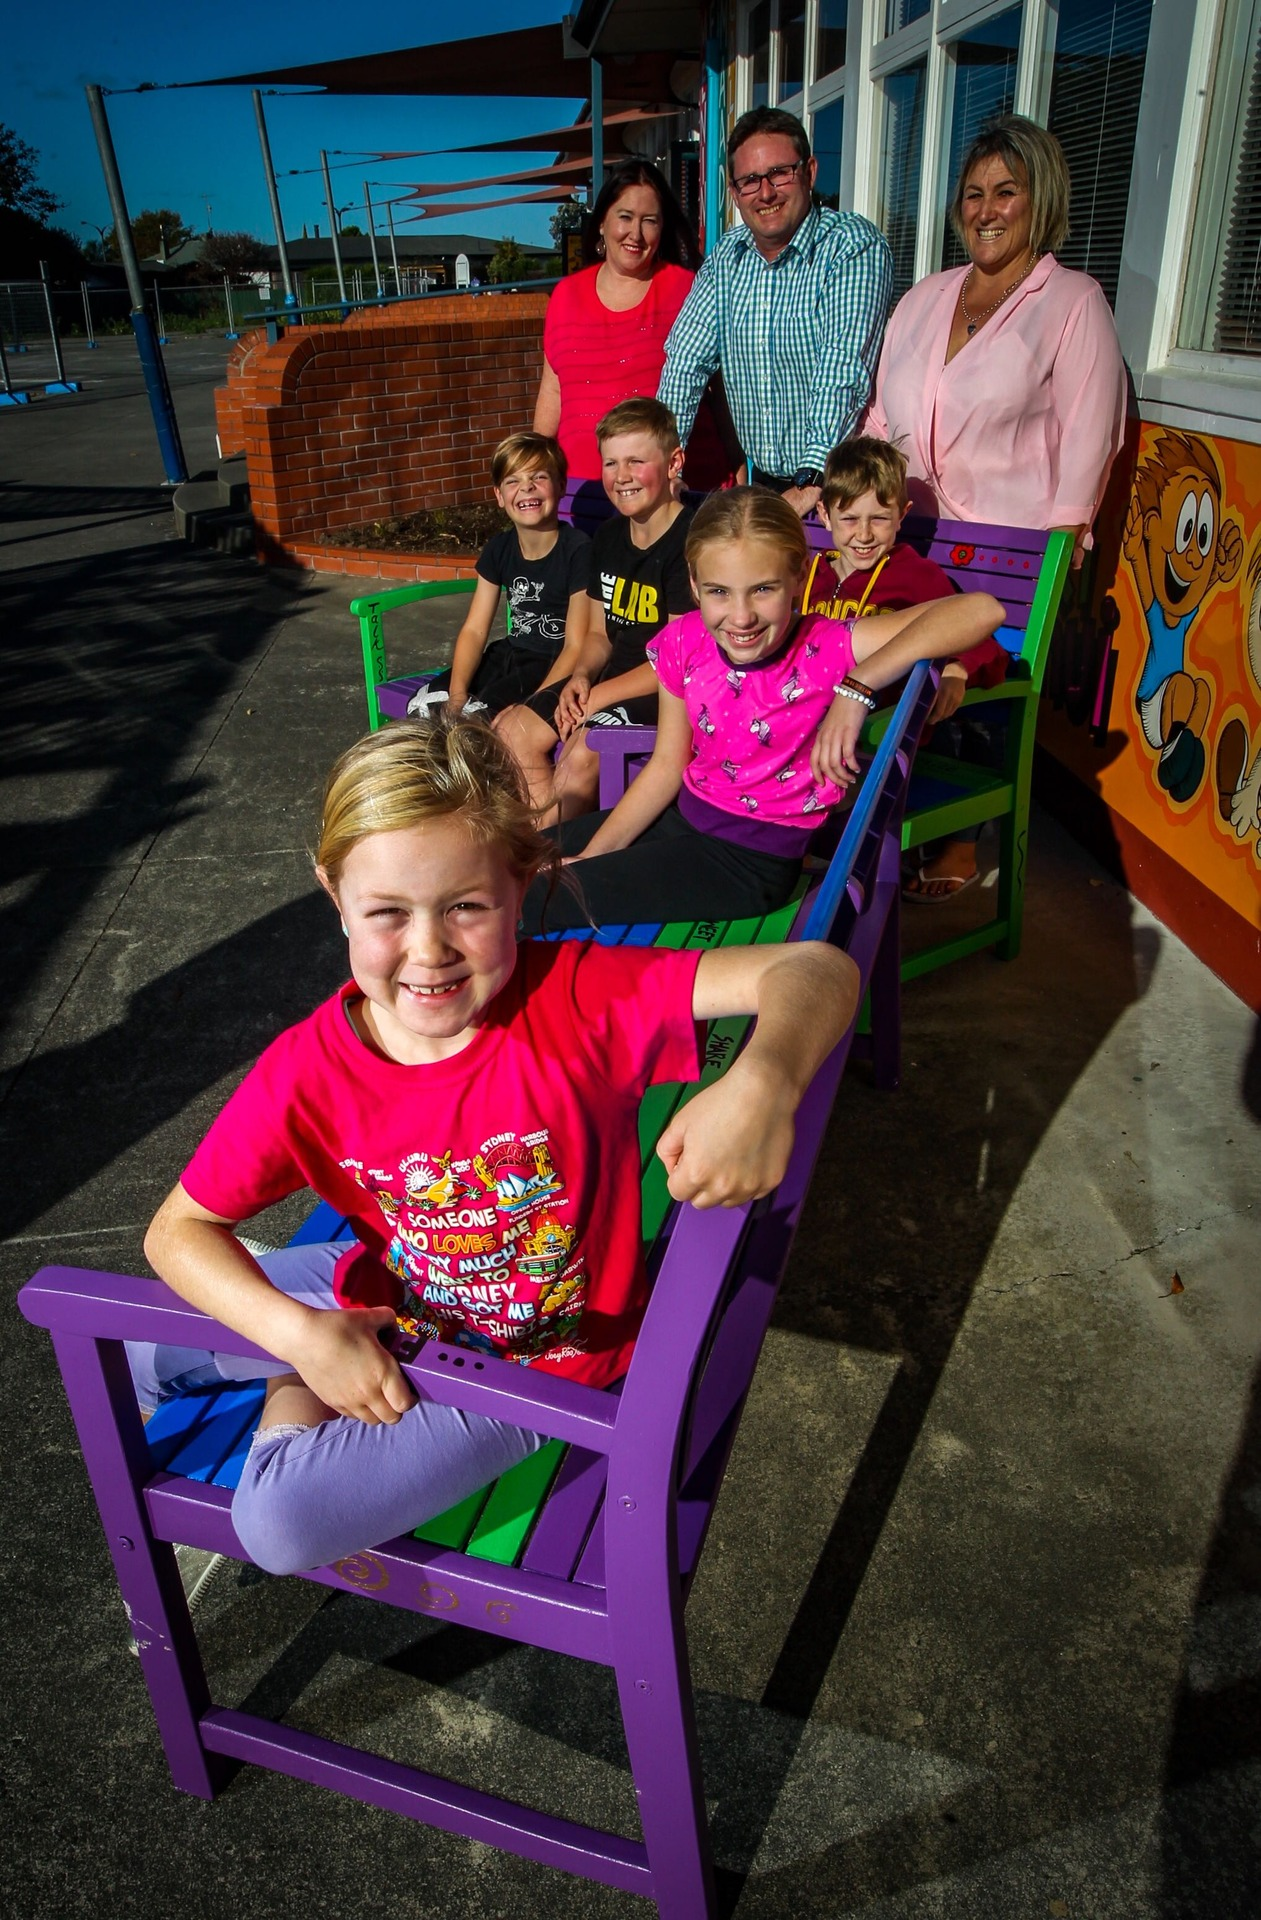 Napier primary school introduces buddy bench to combat loneliness and encourage friendship